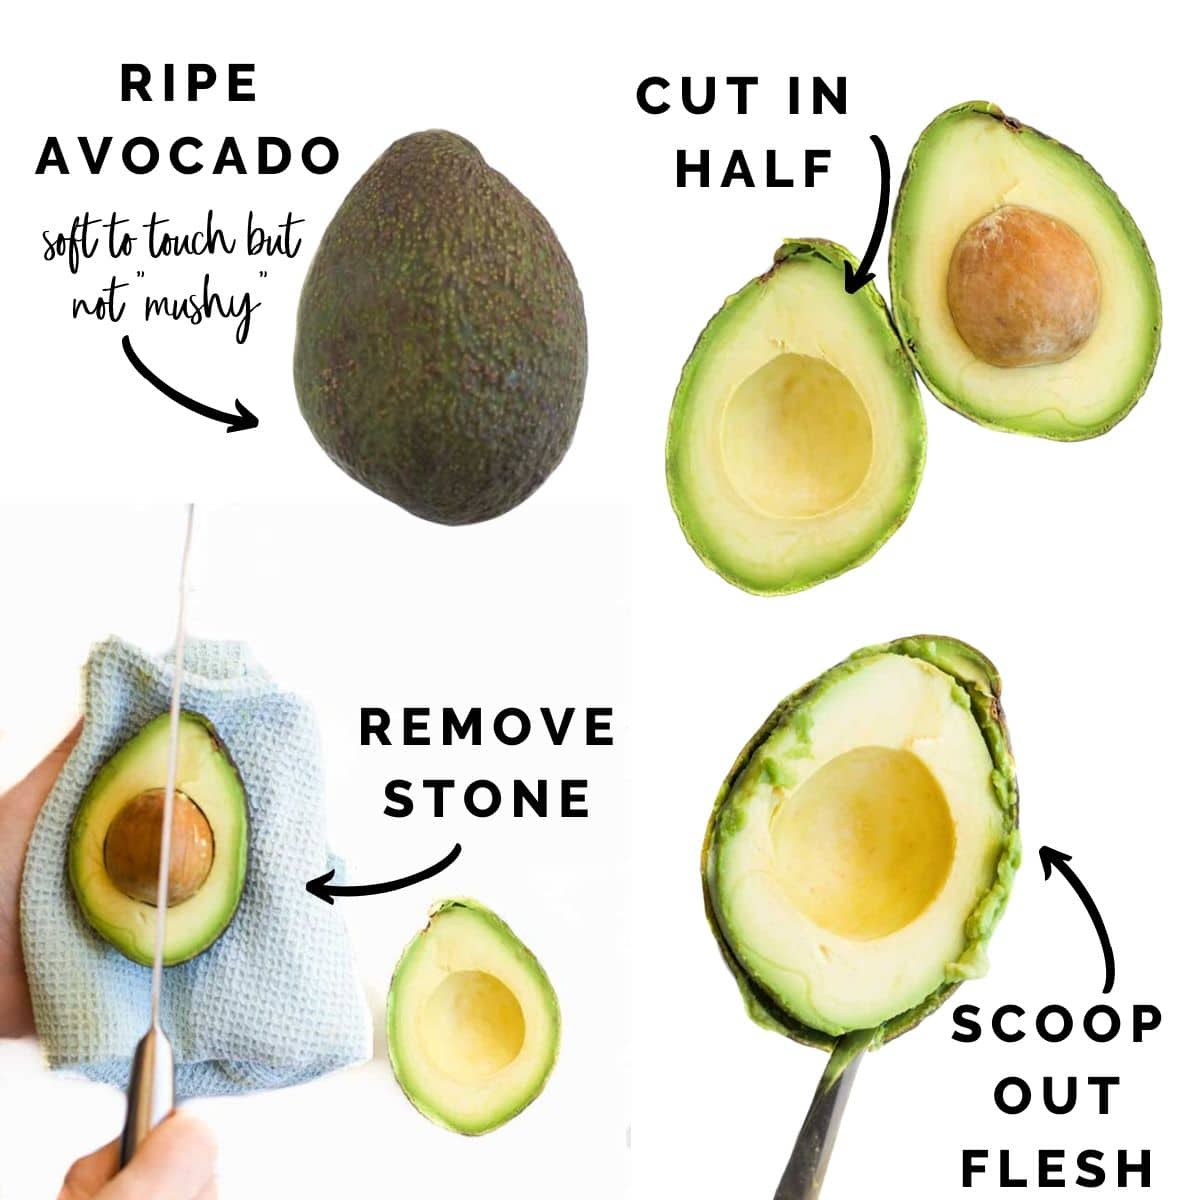 4 Images Showing How to Cut an Avocado